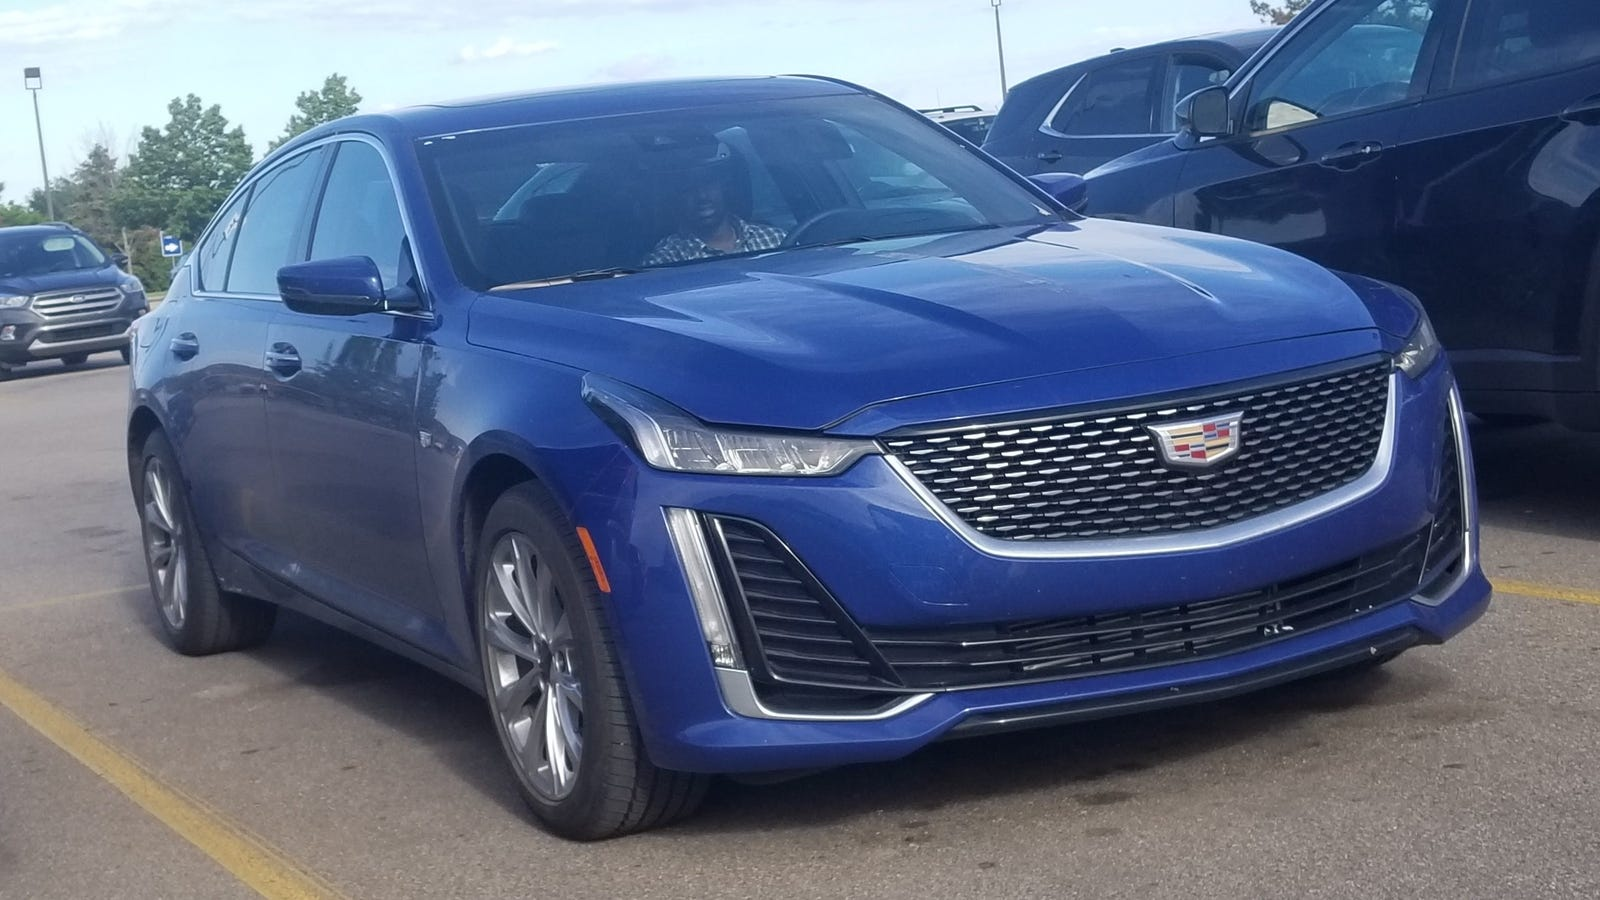 At $37,890 the 2020 Cadillac CT5 Hopes to Compete With the ...